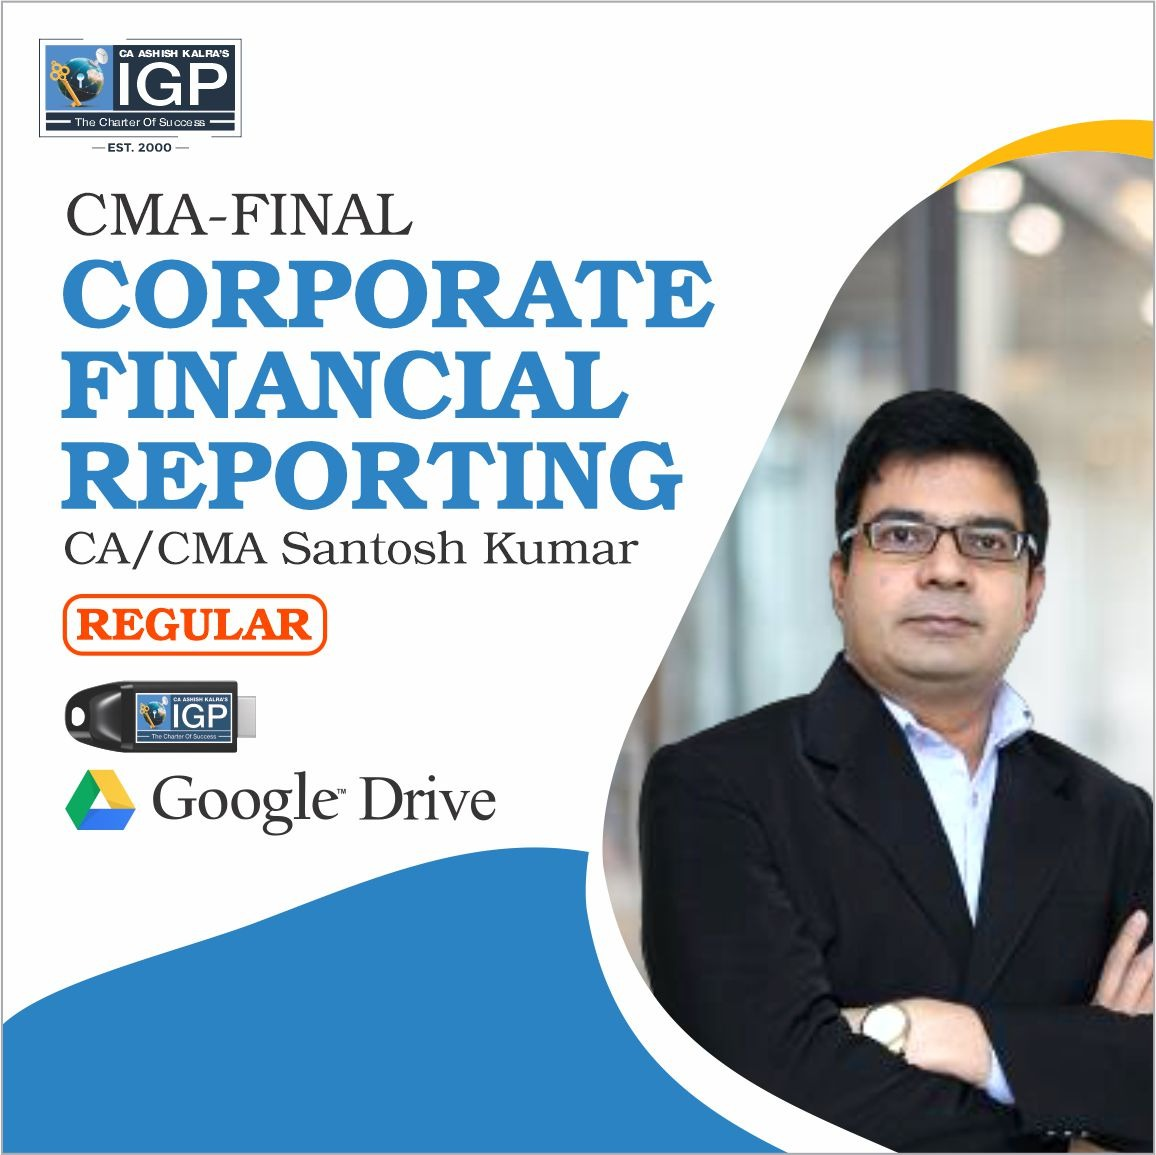 CMA Final, New Course CORPORATE FINANCIAL REPORTING (CFR)-CMA-Final-CORPORATE FINANCIAL REPORTING (CFR)- CA/CMA SANTOSH KUMAR